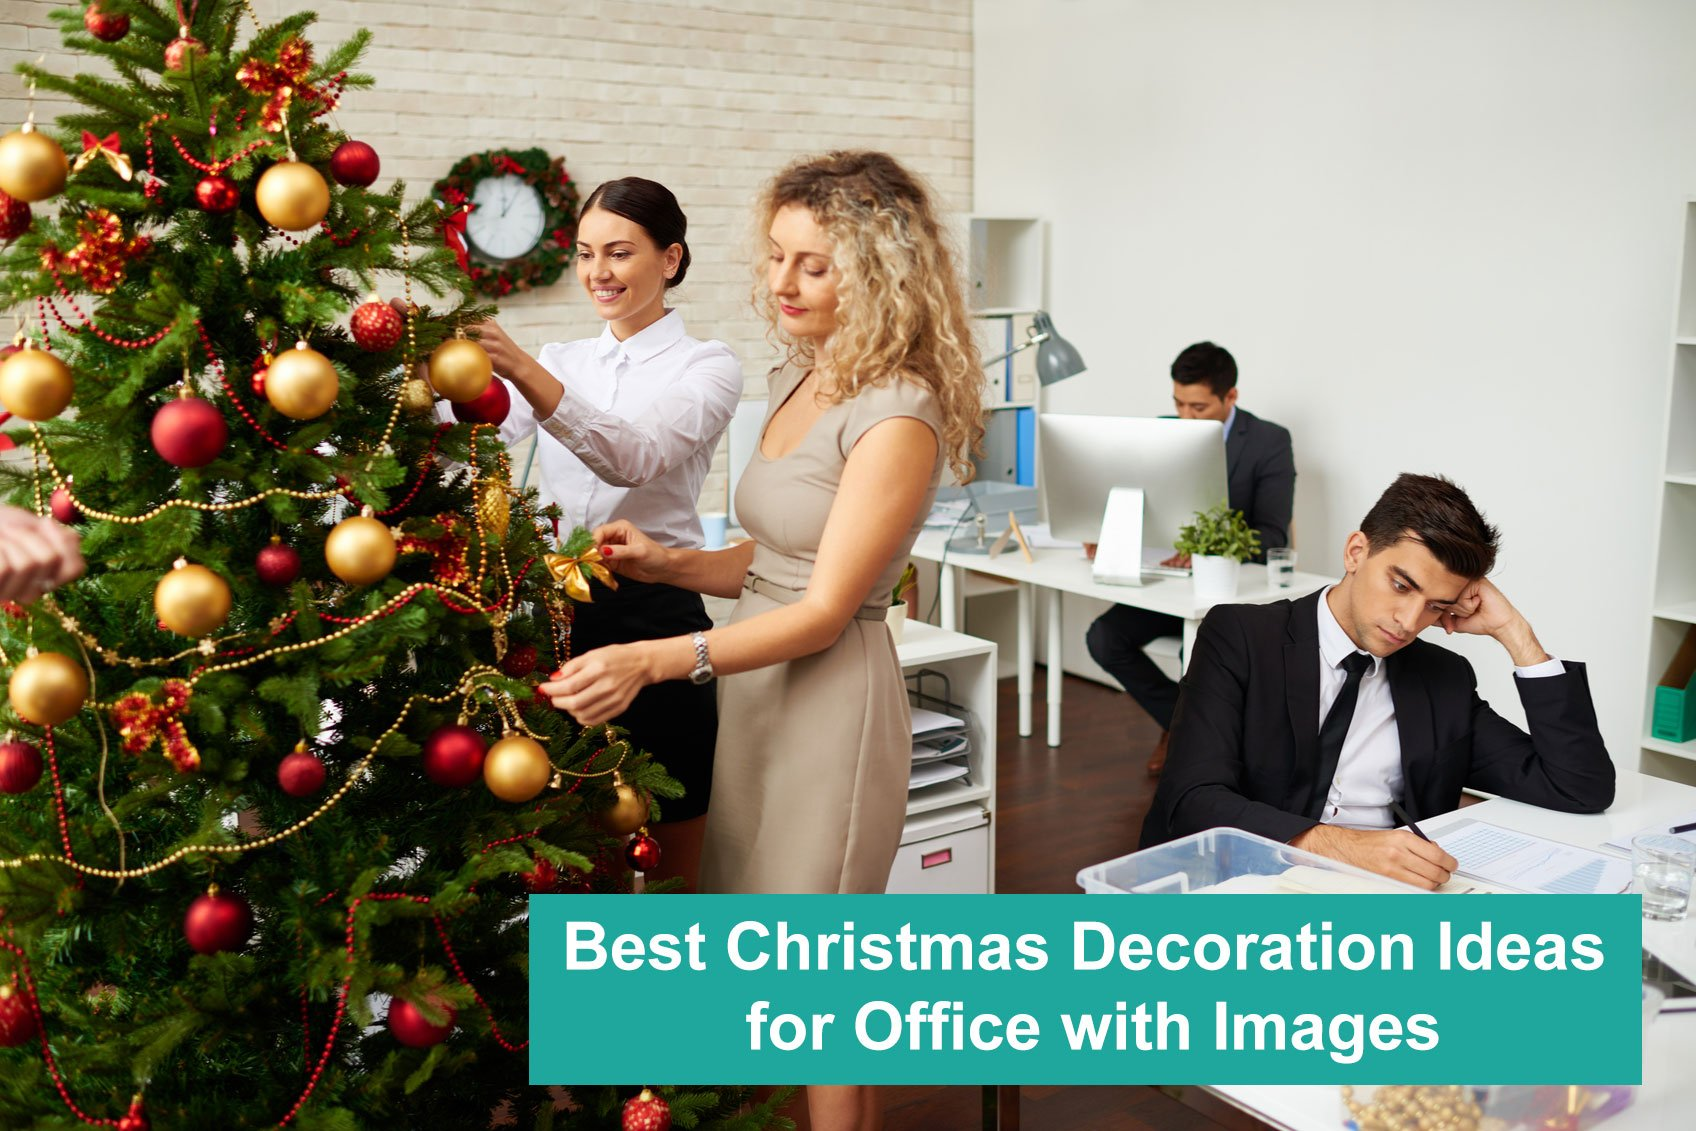 Best Christmas Decoration Ideas for Office with Images